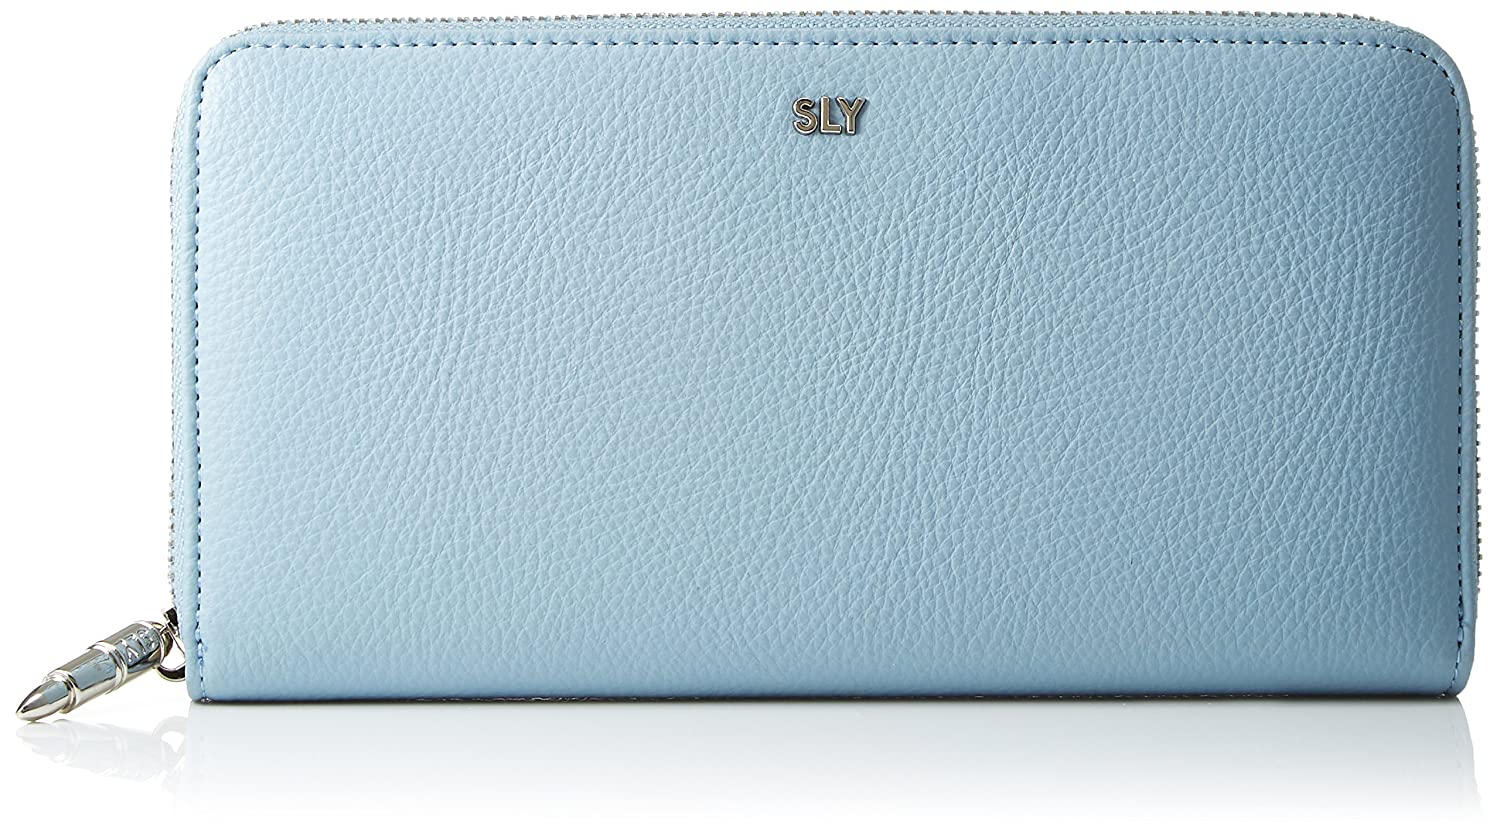 [スライ] ROUND ZIPPED WALLET NEO SHRINK(SLG) s09211204 B079YZ68NV  サックス